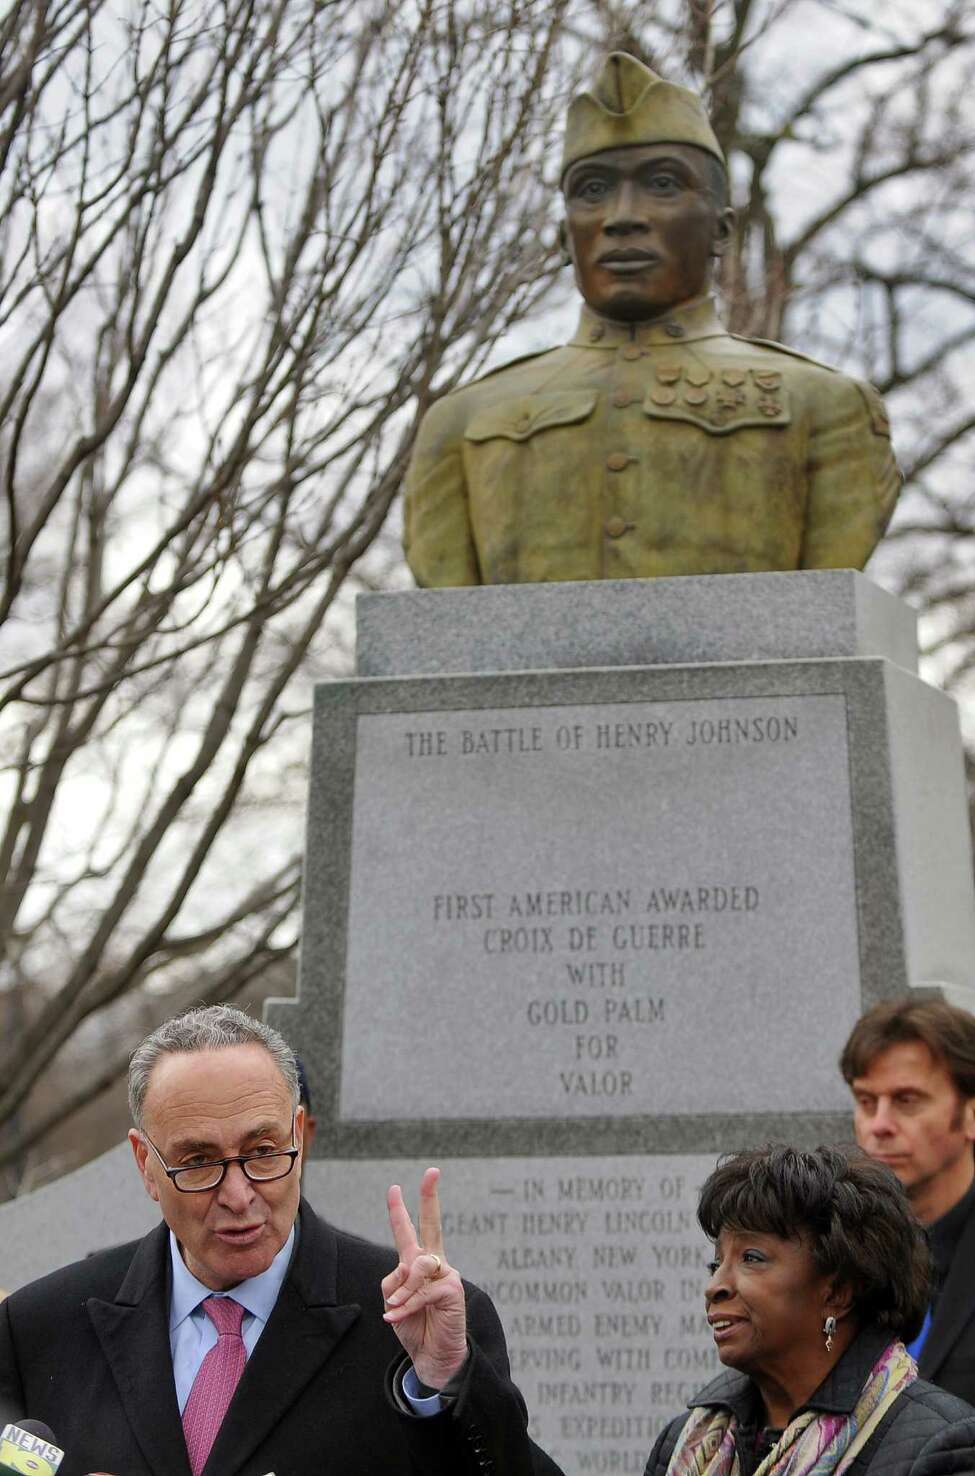 U.S. Senator Charles E. Schumer announces that newly discovered documents will enhance Sgt. Henry Johnson's chance of receiving the Medal of Honor, at the World War I hero's statue in Washington Park on Tuesday March 22, 2011 in Albany, NY. Albany County Legislators Lucille McKnight and Brian Scavo are at right. ( Philip Kamrass/ Times Union )